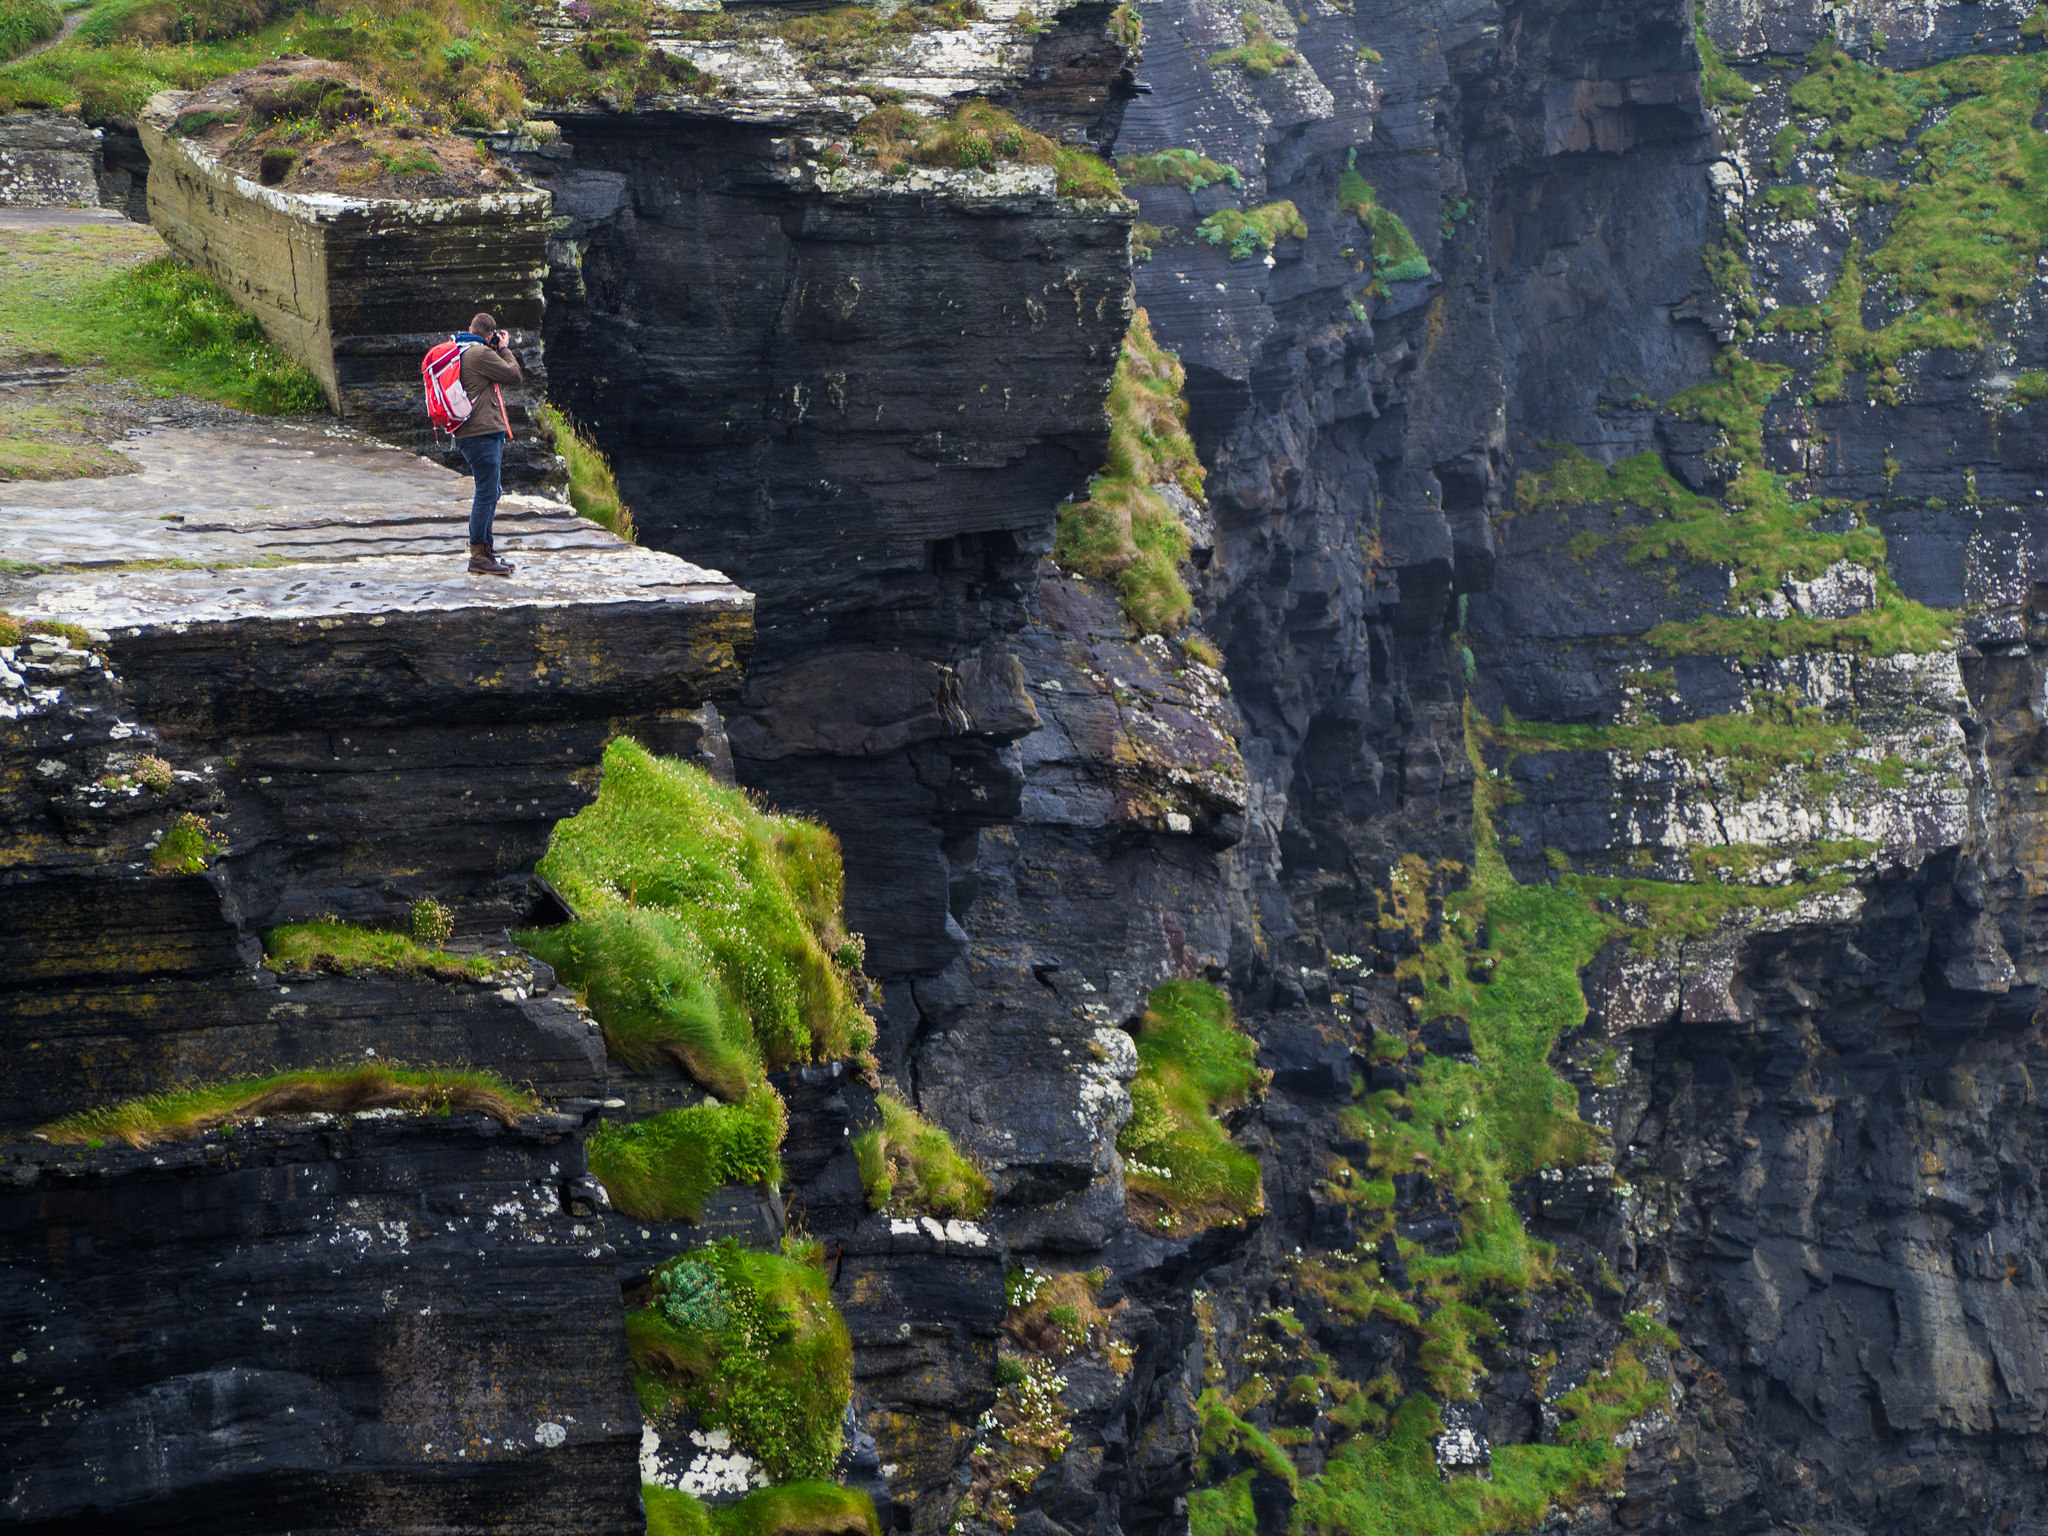 Chris Hajny photographs the Cliffs of Moher from one of the bluffs. Photo by Jesse Riggle.